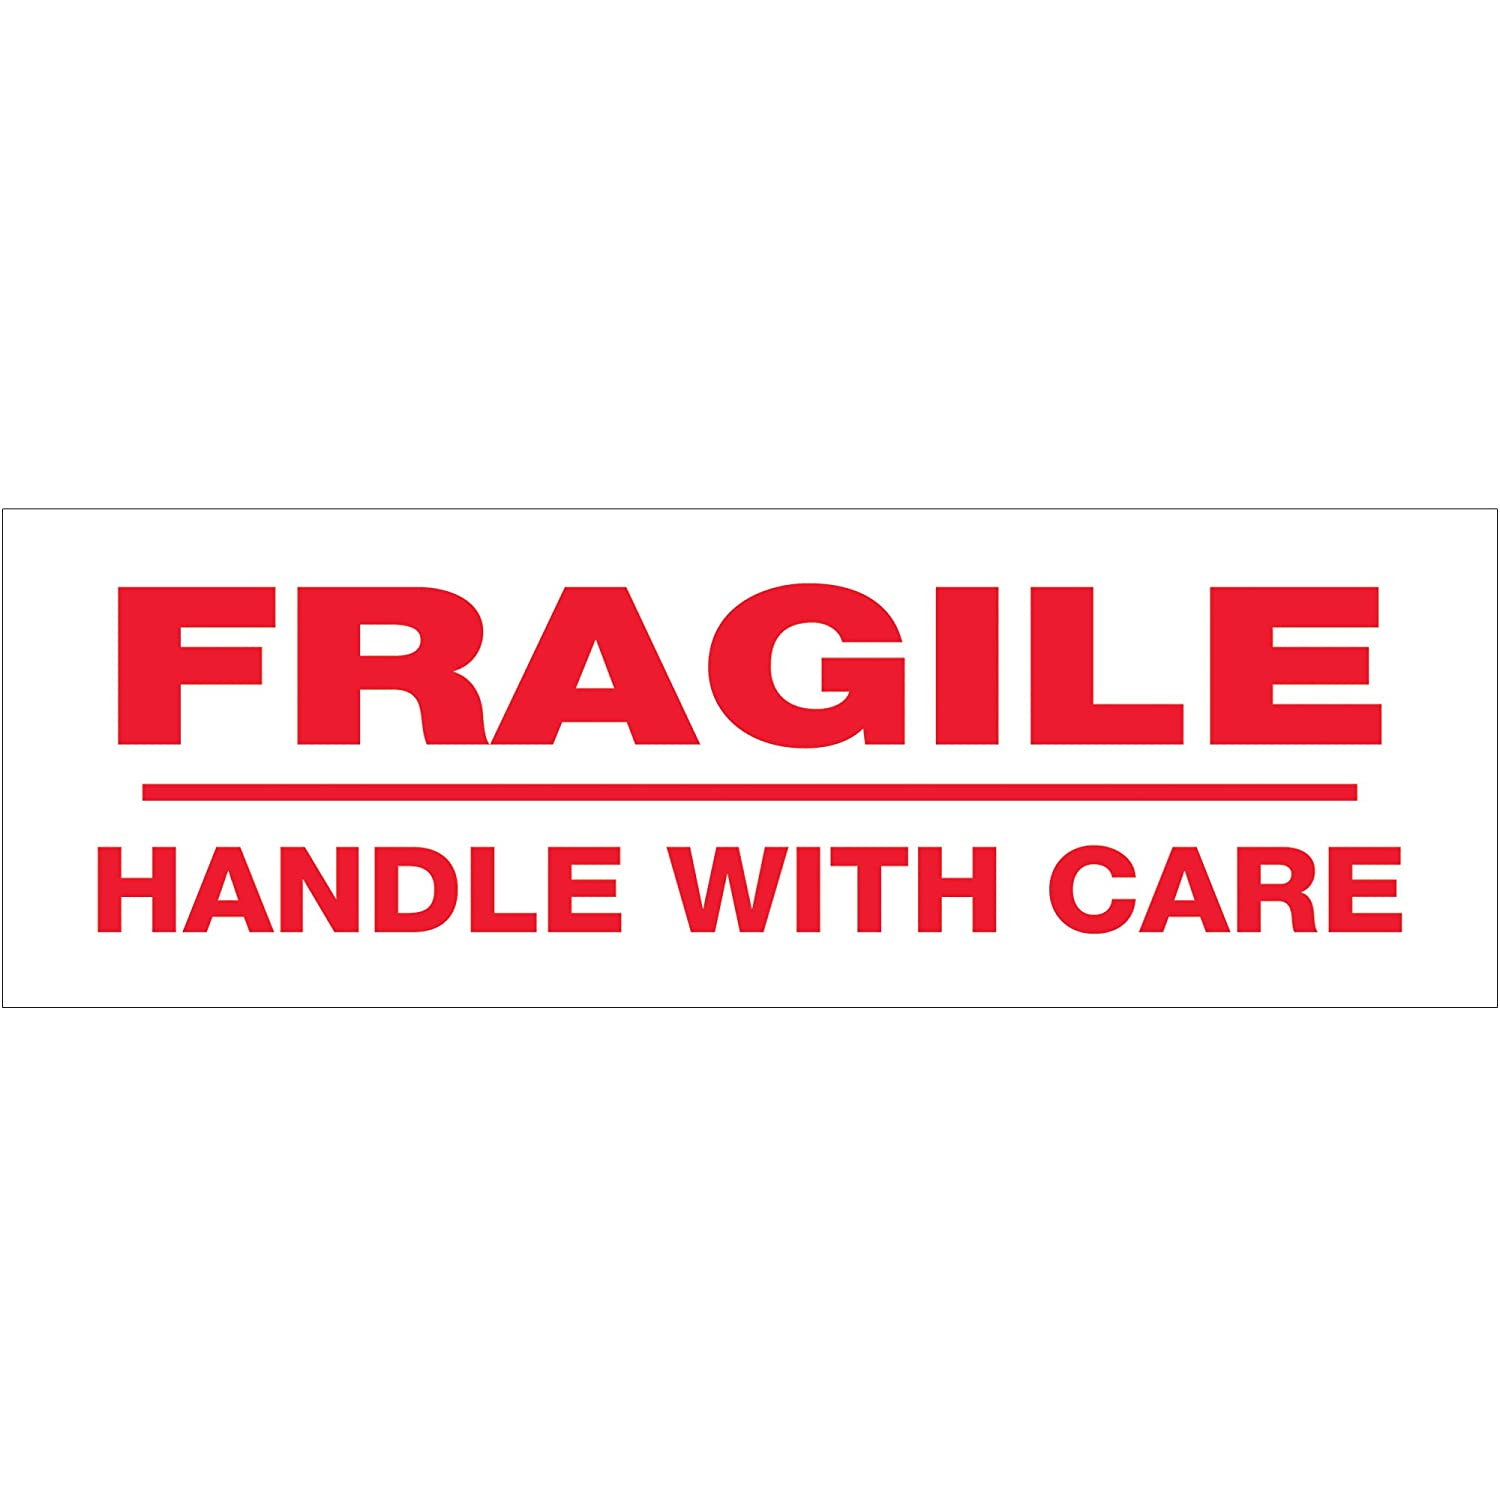 Tape Logic T901P02 Pre-Printed Carton Sealing Tape, Legend Fragile Handle with Care, 55 Yards Length X 2-Inch Width, 2.2 Millimeter Thick, Red on White (Case of 36)